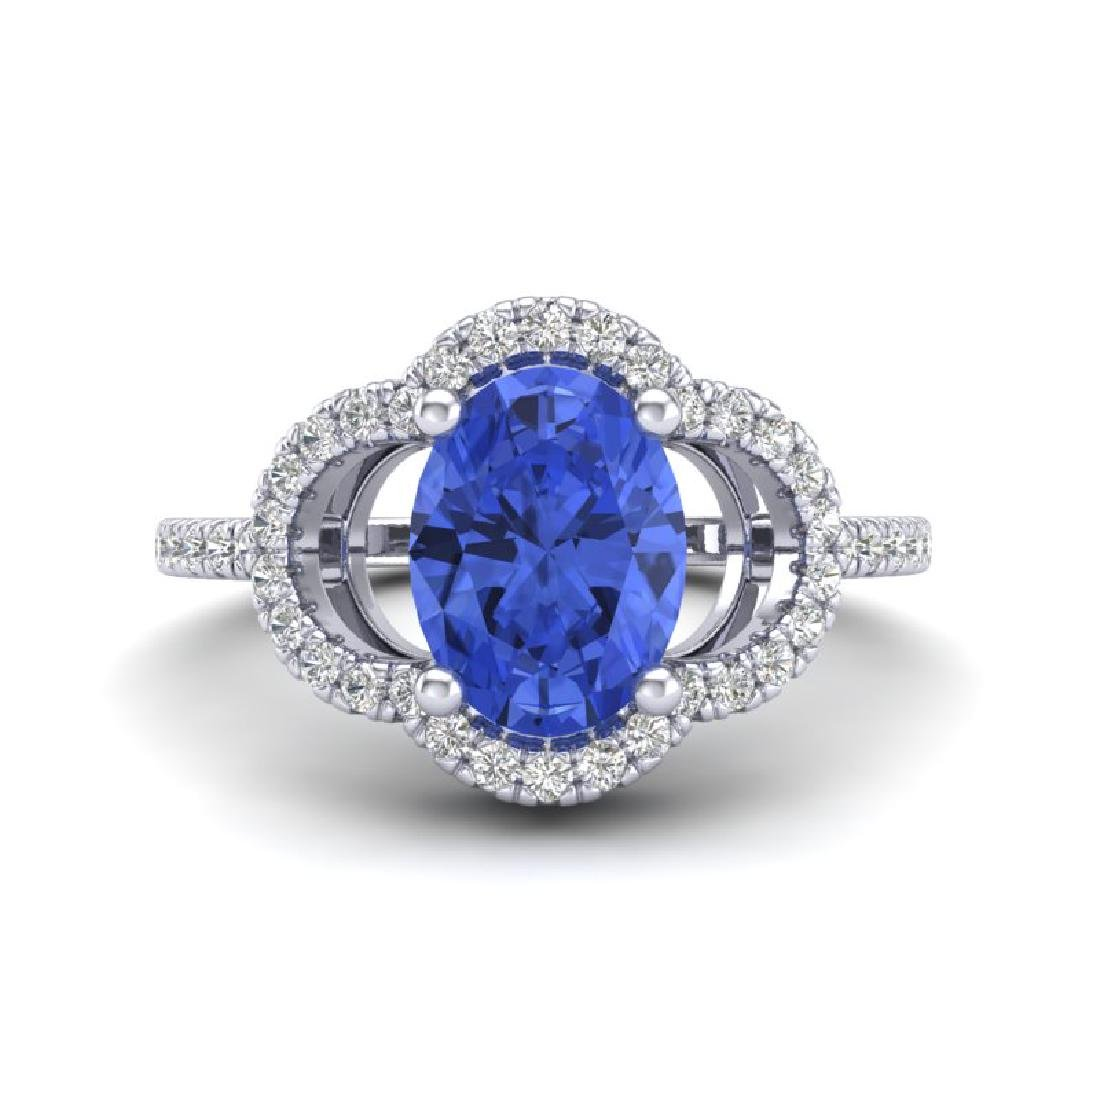 1.75 CTW Tanzanite & Micro Pave VS/SI Diamond Ring 10K